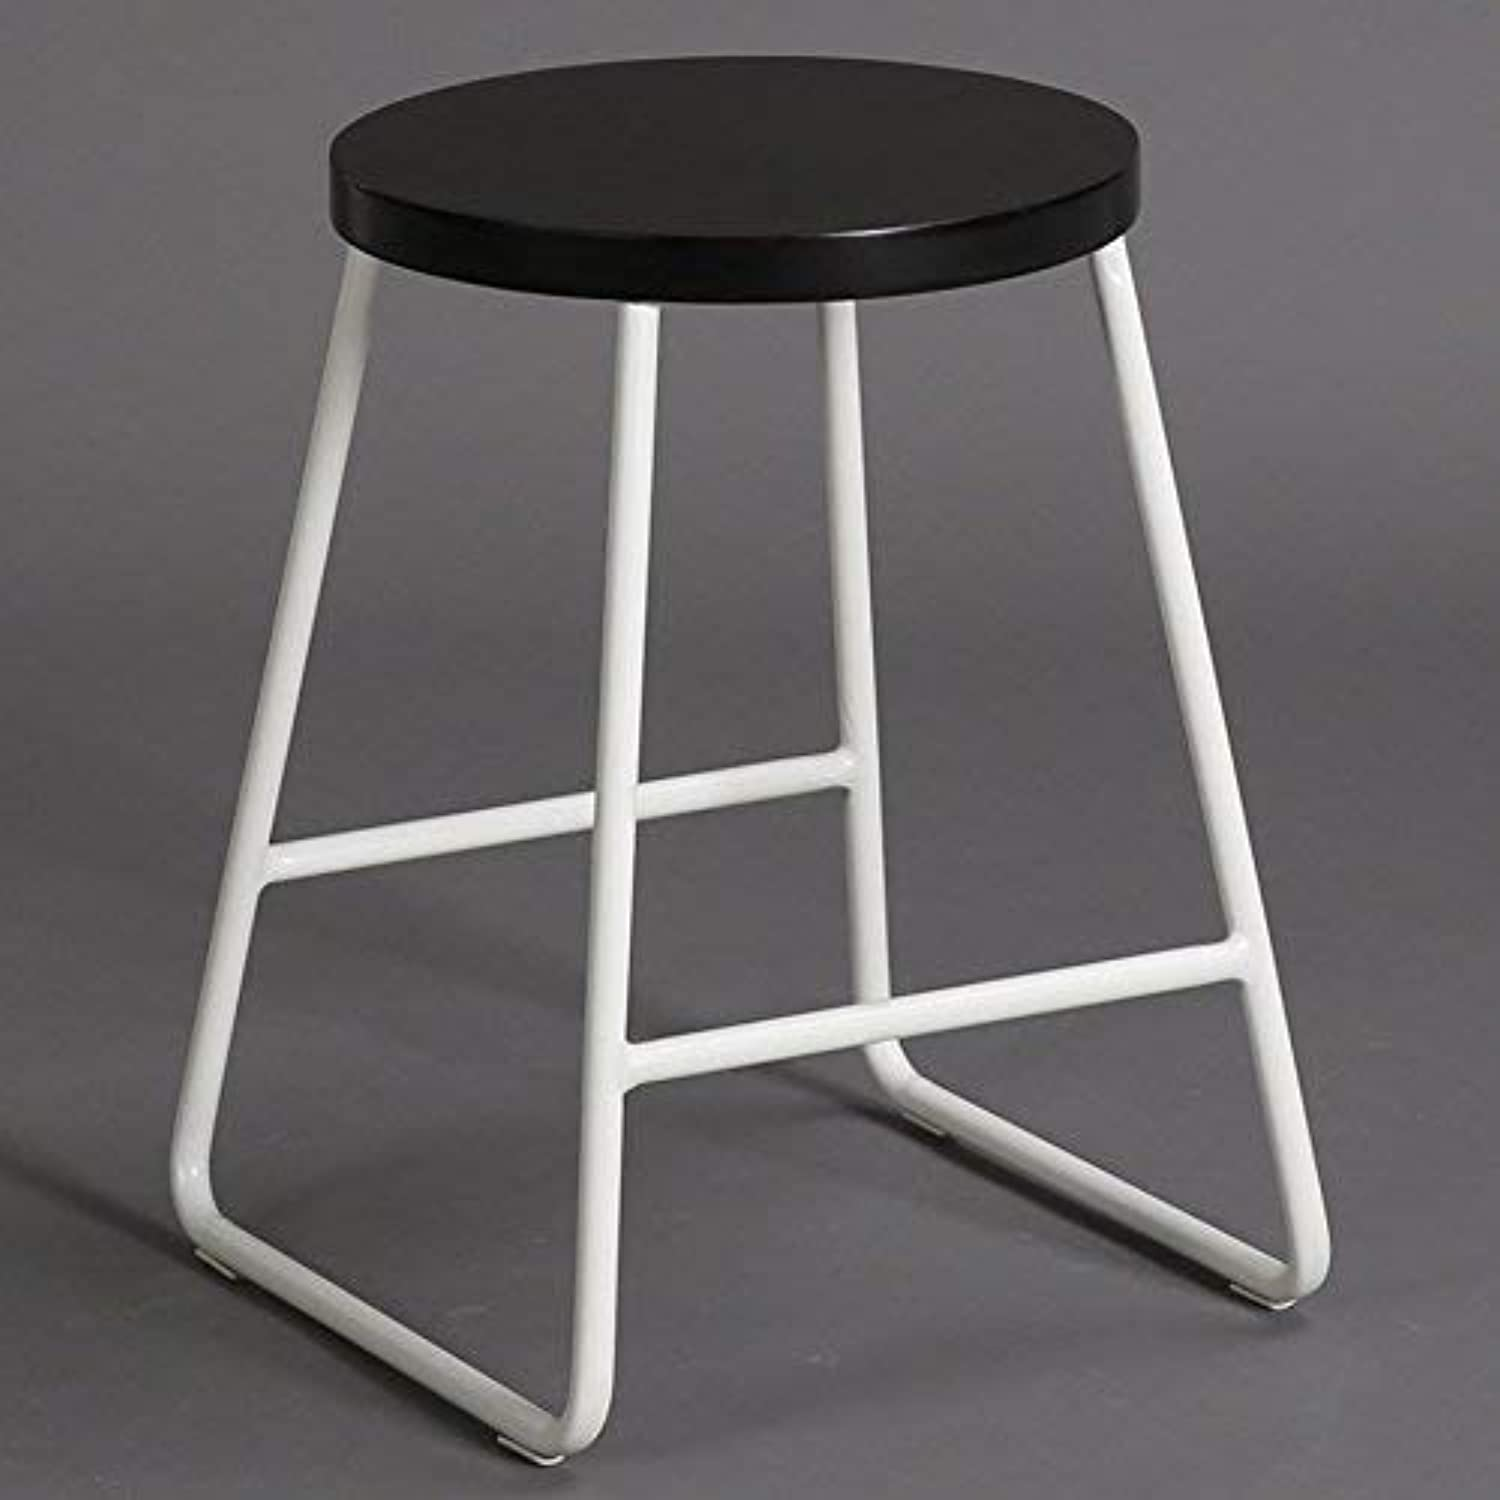 SED Chair - Iron Bar Stool Loft Round Stool Home Change shoes Stool Cloth Stool Bar Stool Dressing Stool Clothing Store Simple Decoration Stool Adult Home Stool